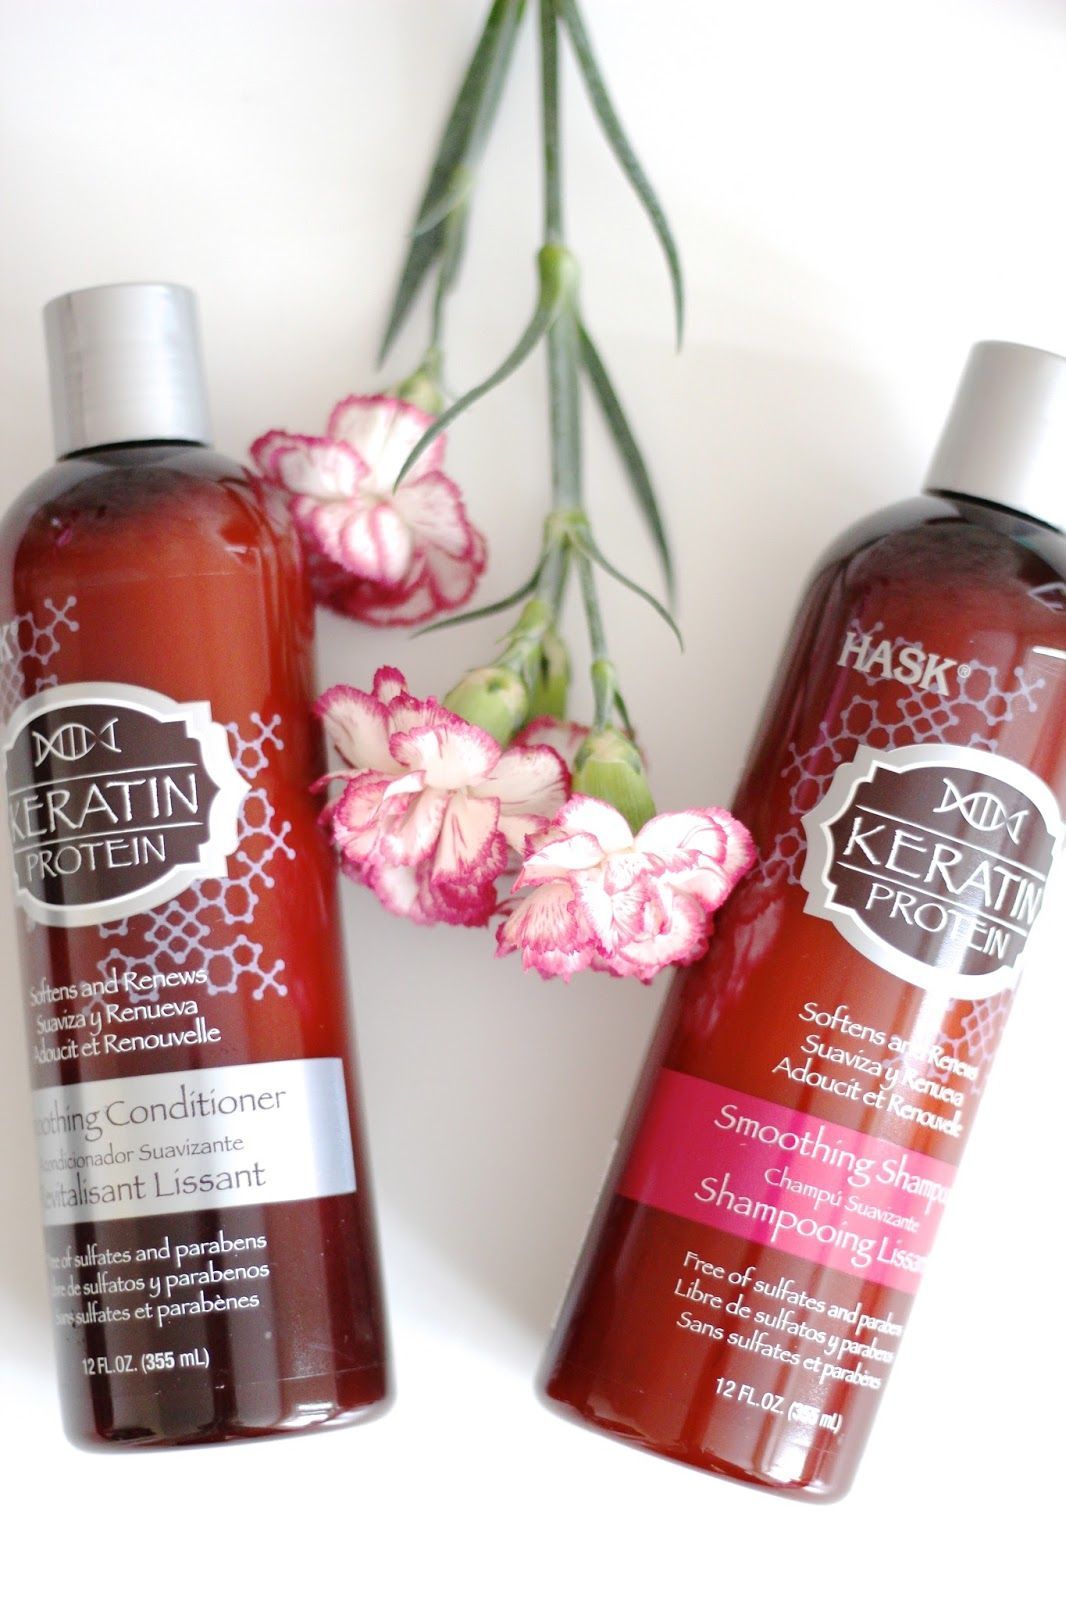 HASK Keratin Protein Shampoo and Conditioner Review